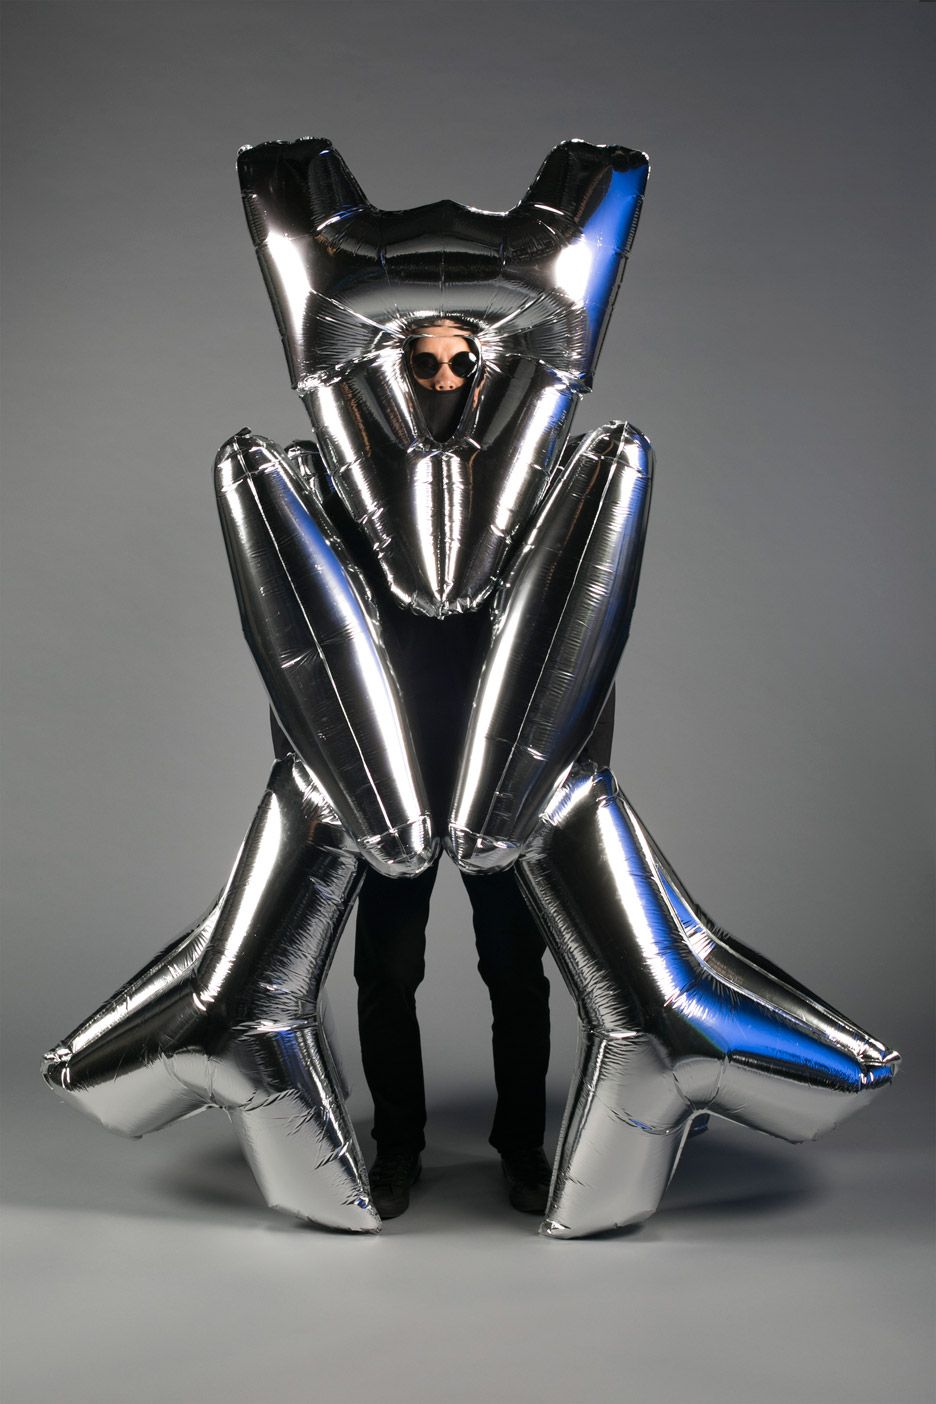 Ken Tanabe creates Halloween costumes from helium balloons and old CDs